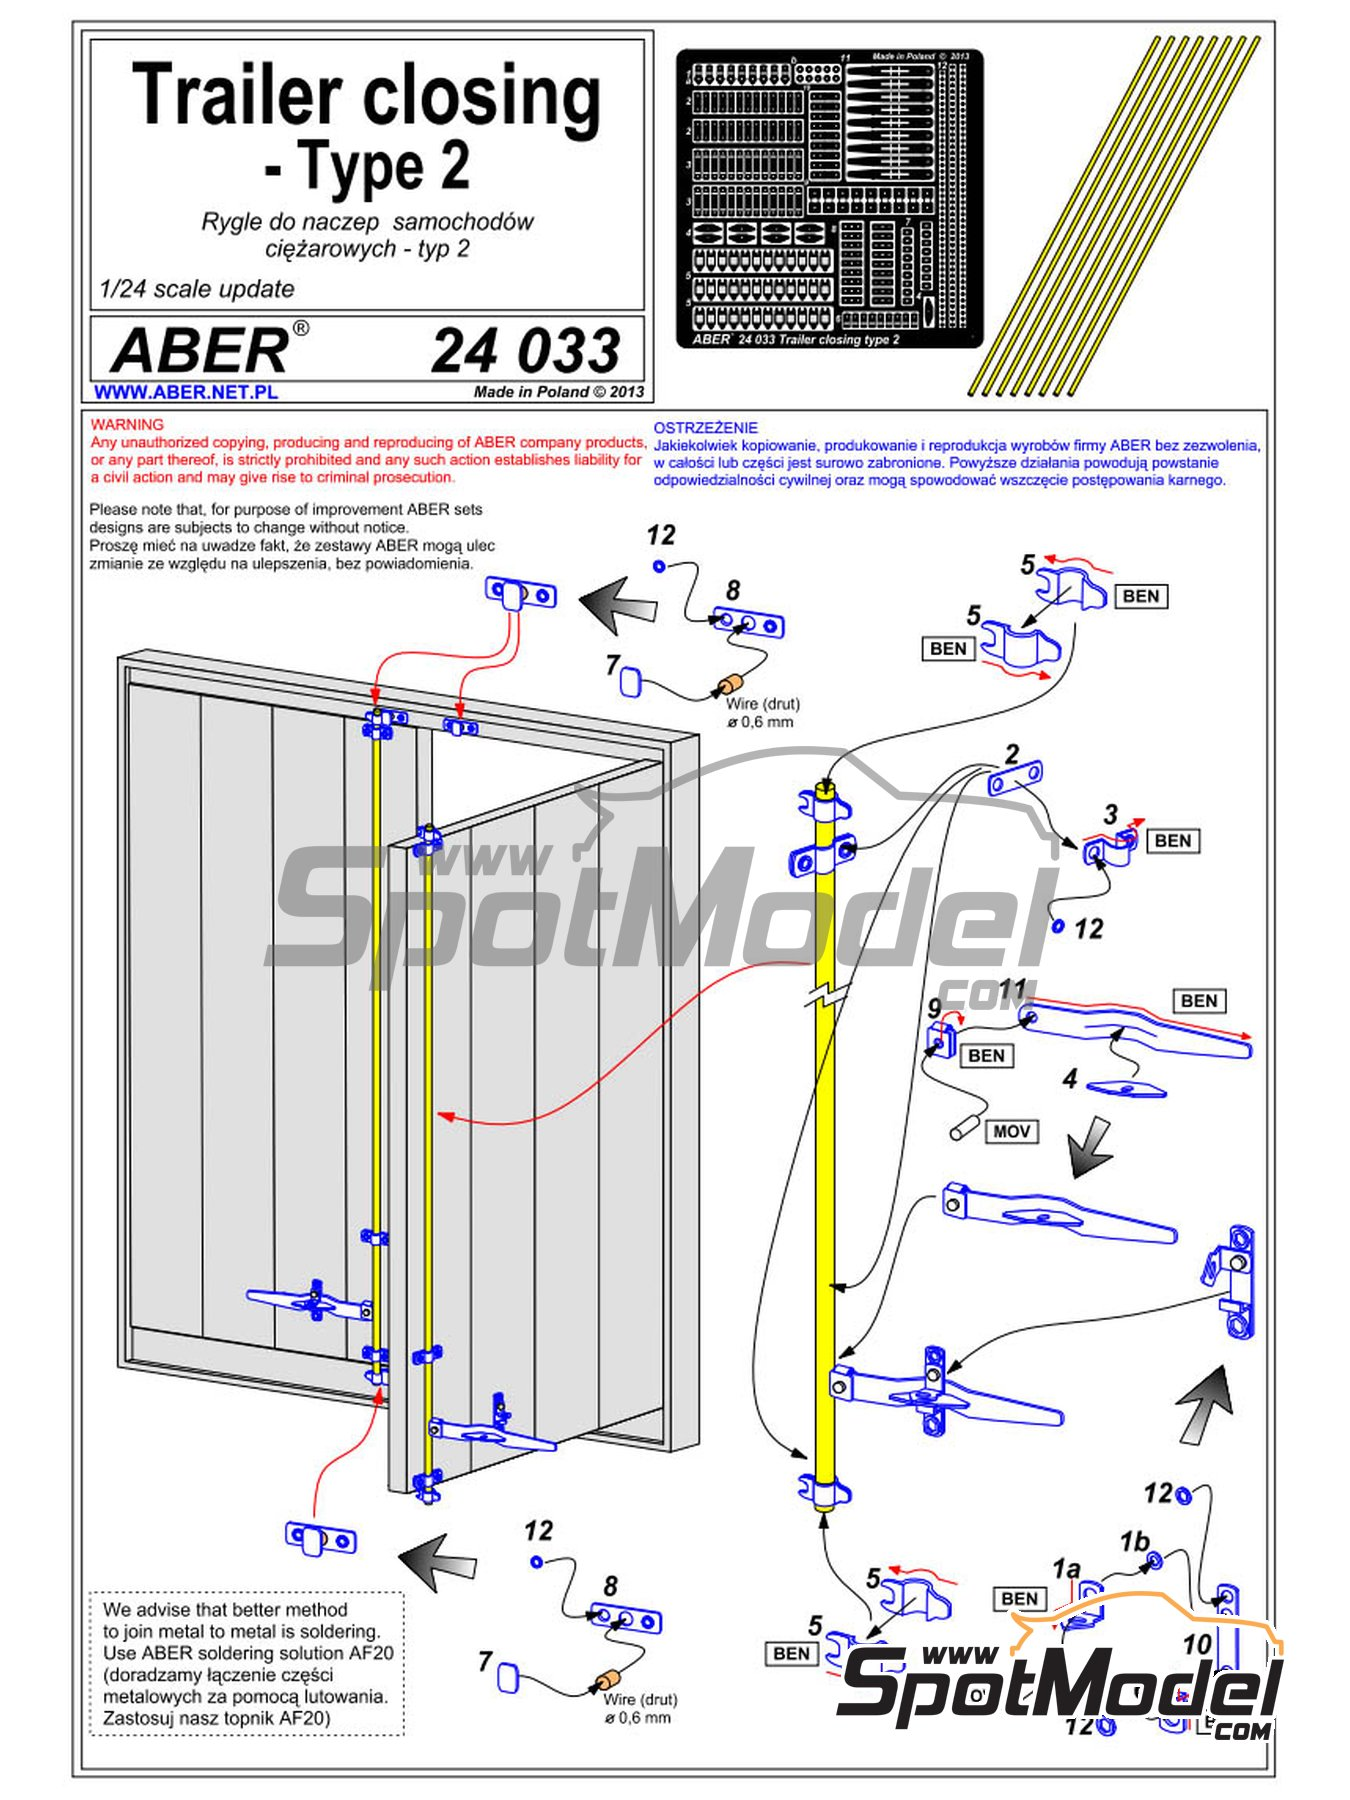 Trailer and container closing | Detail in 1/24 scale manufactured by Aber (ref.24.033) image